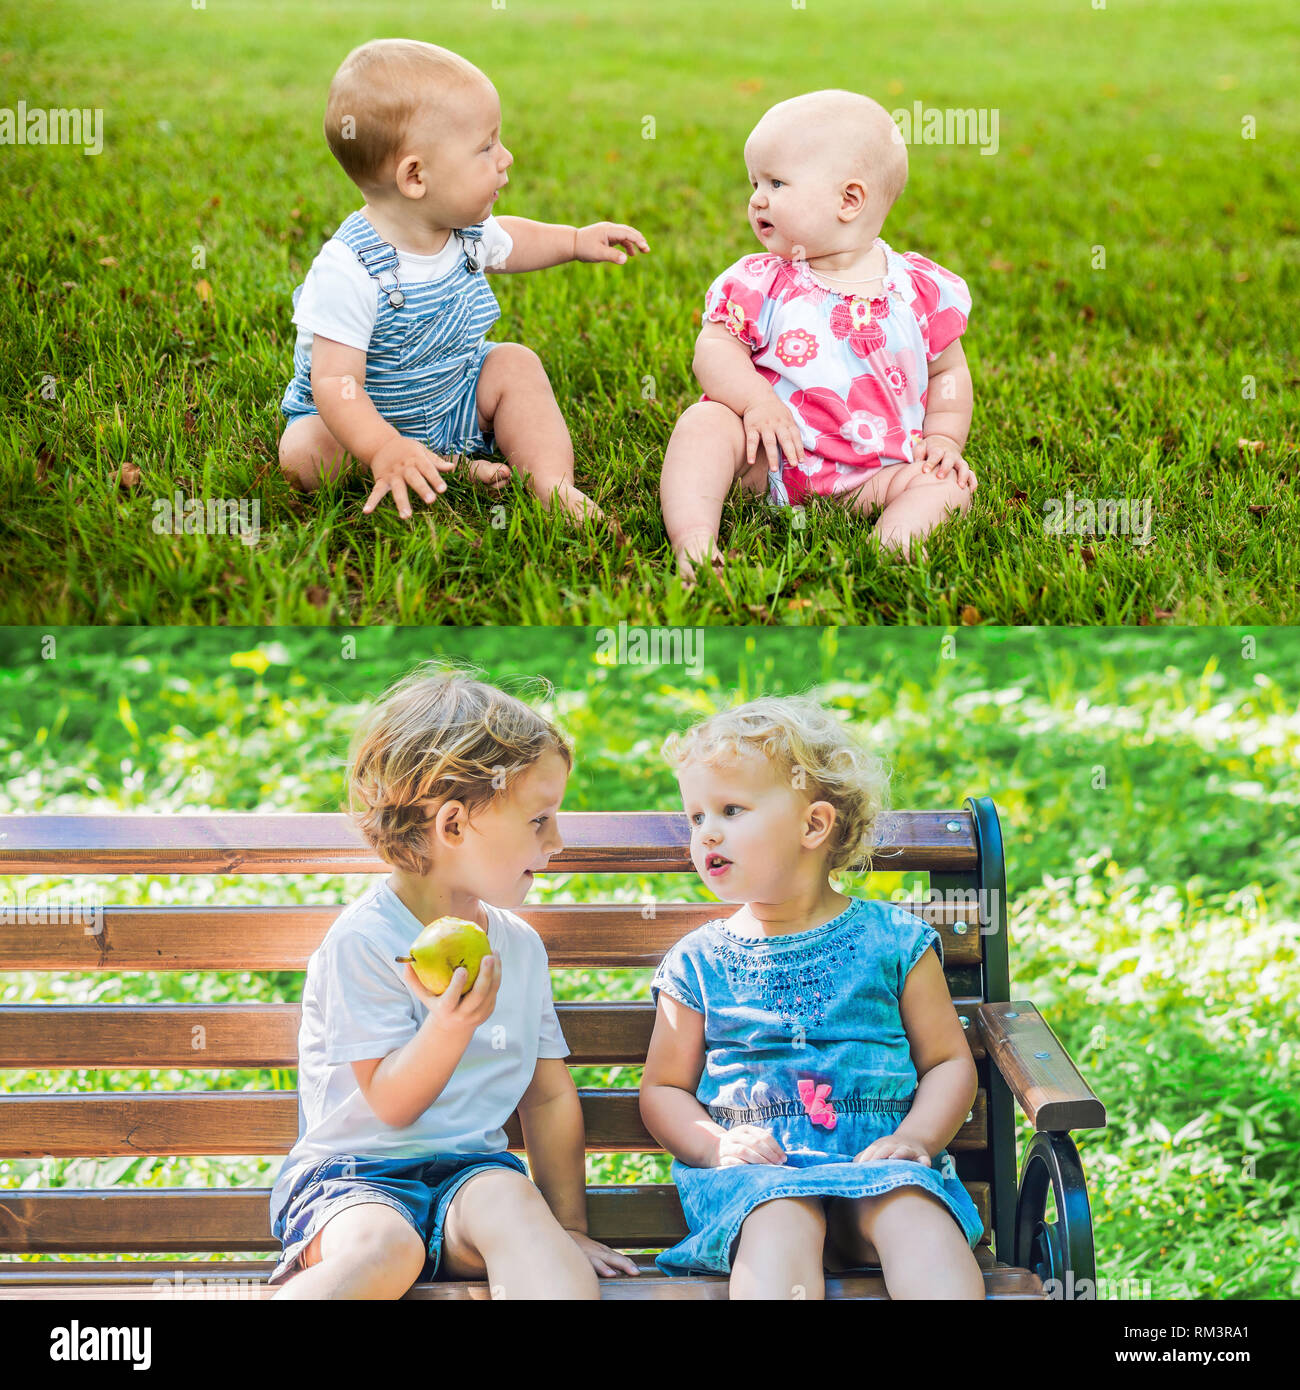 Friends have grown. Children are friends from 1 year old. Now they are 4 years old. Two happy baby boy sitting and interact, talk, look at each other - Stock Image